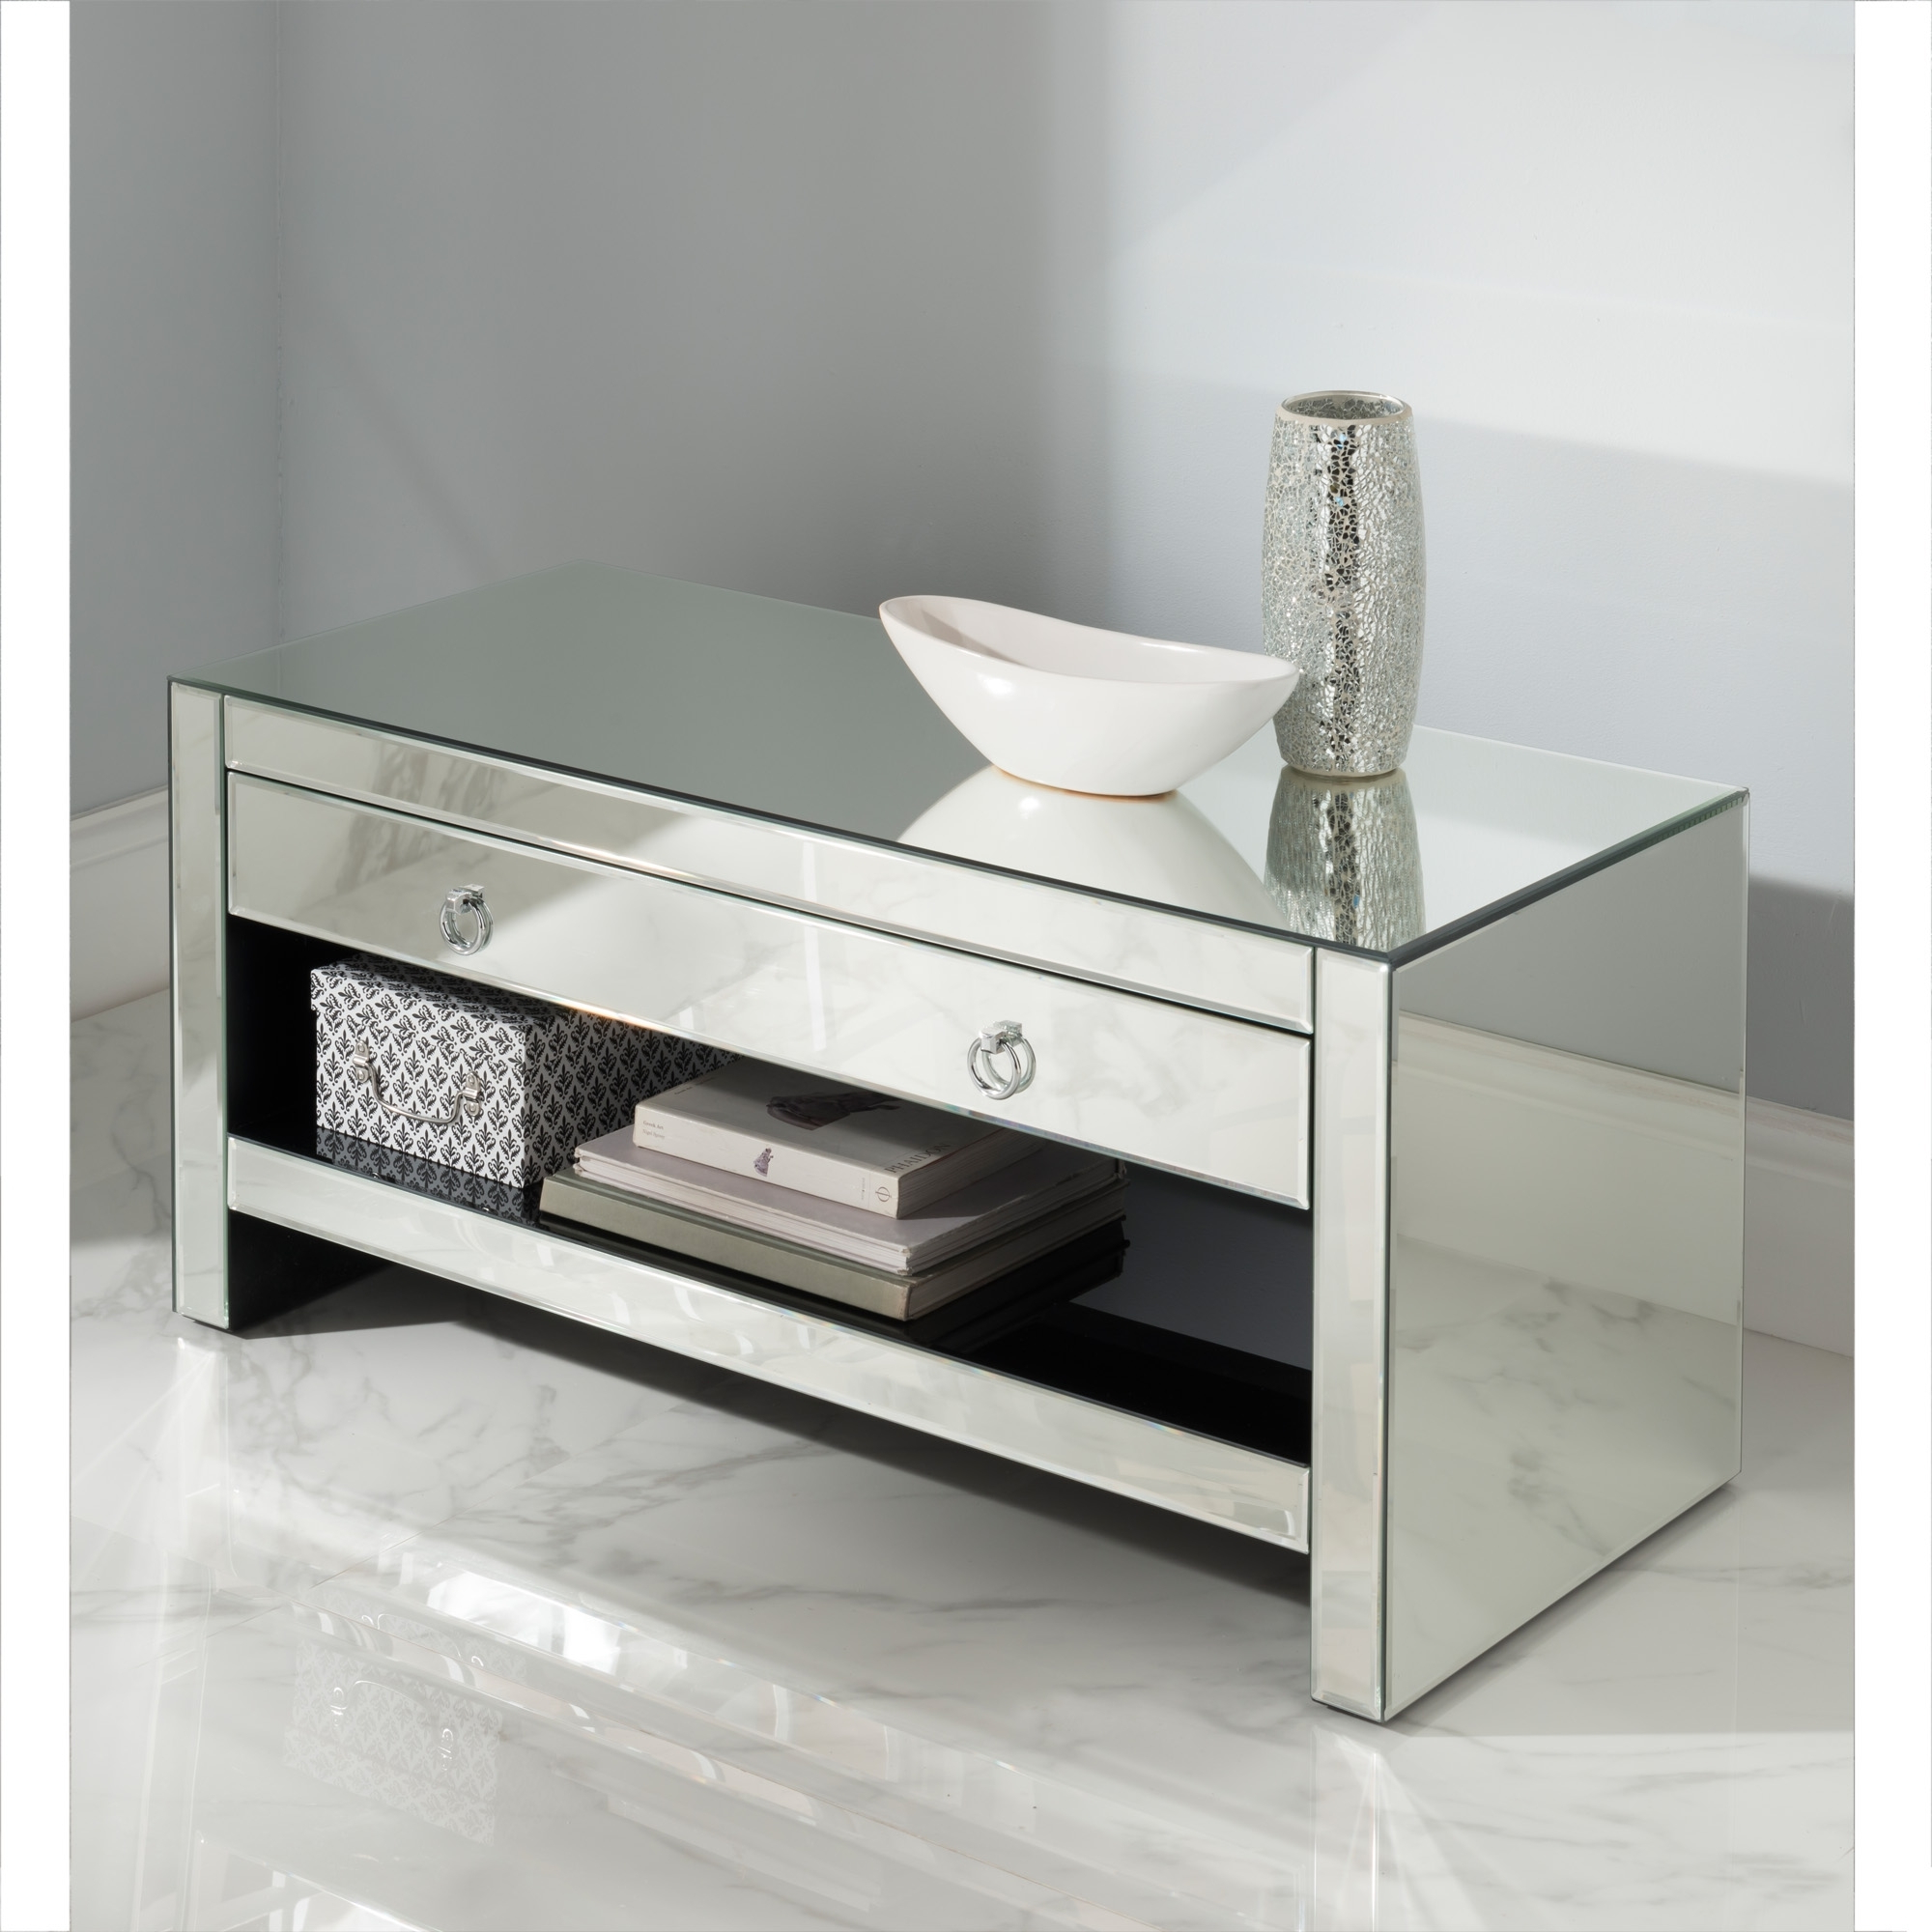 Mirrored Tv Cabinets Furniture With Regard To Trendy Mirrored Tv Cabinet (View 3 of 20)